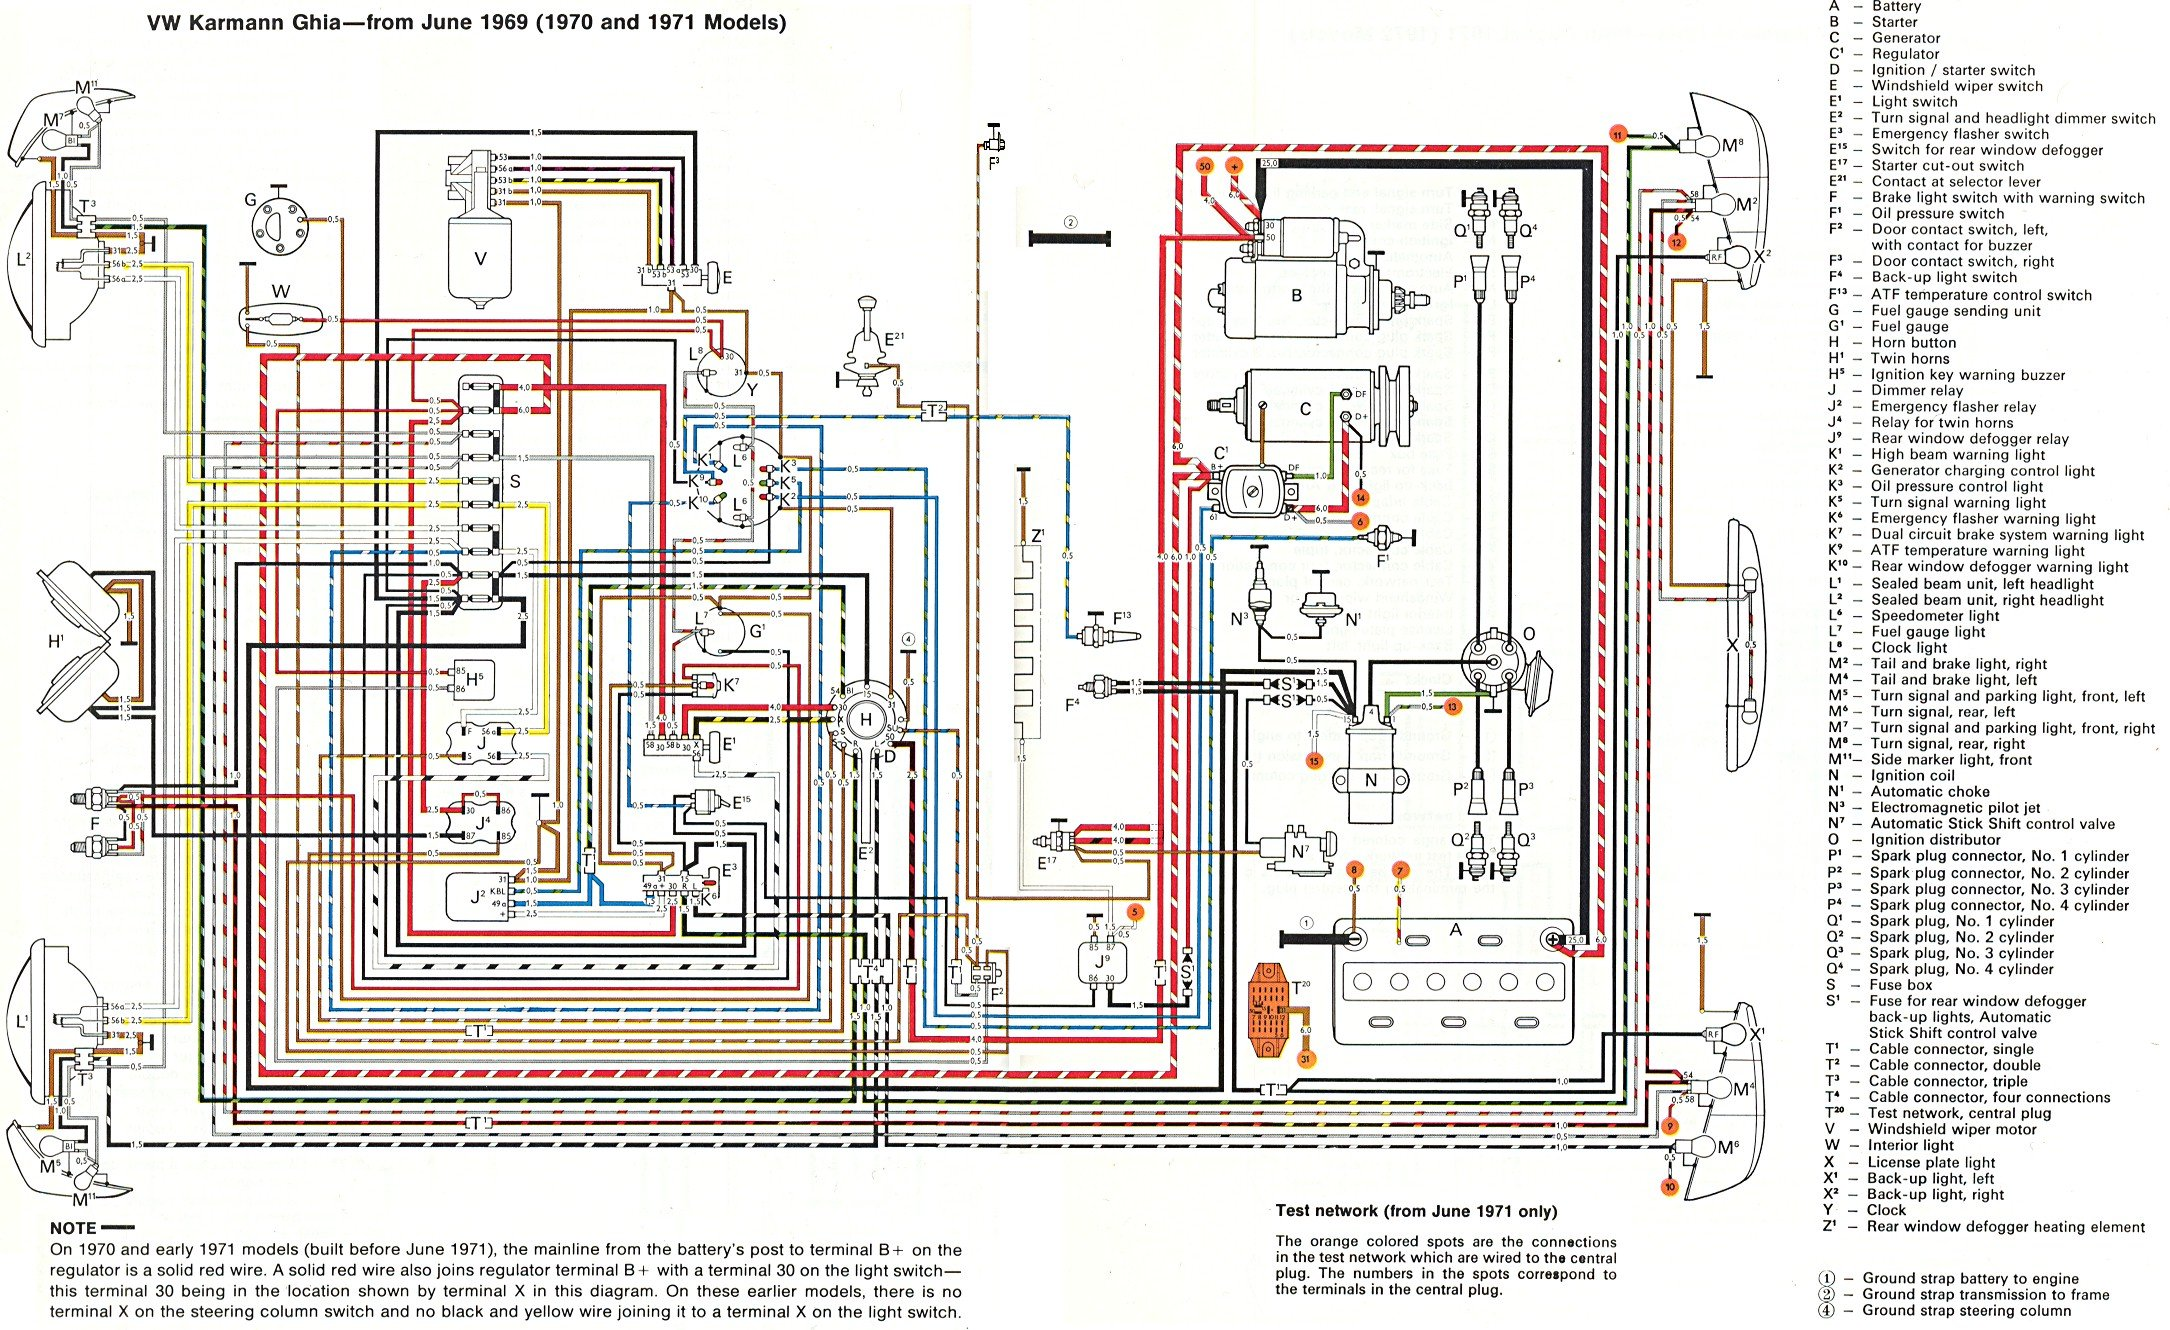 vw beetle wiring diagram with Wiringghia on What Is An Alternator together with 2011 Wrx Fuse Box in addition Wire71t3 besides 651659 Fuel Pump Electric Diagram also Volkswagen Passat Horn Wiring Diagram.